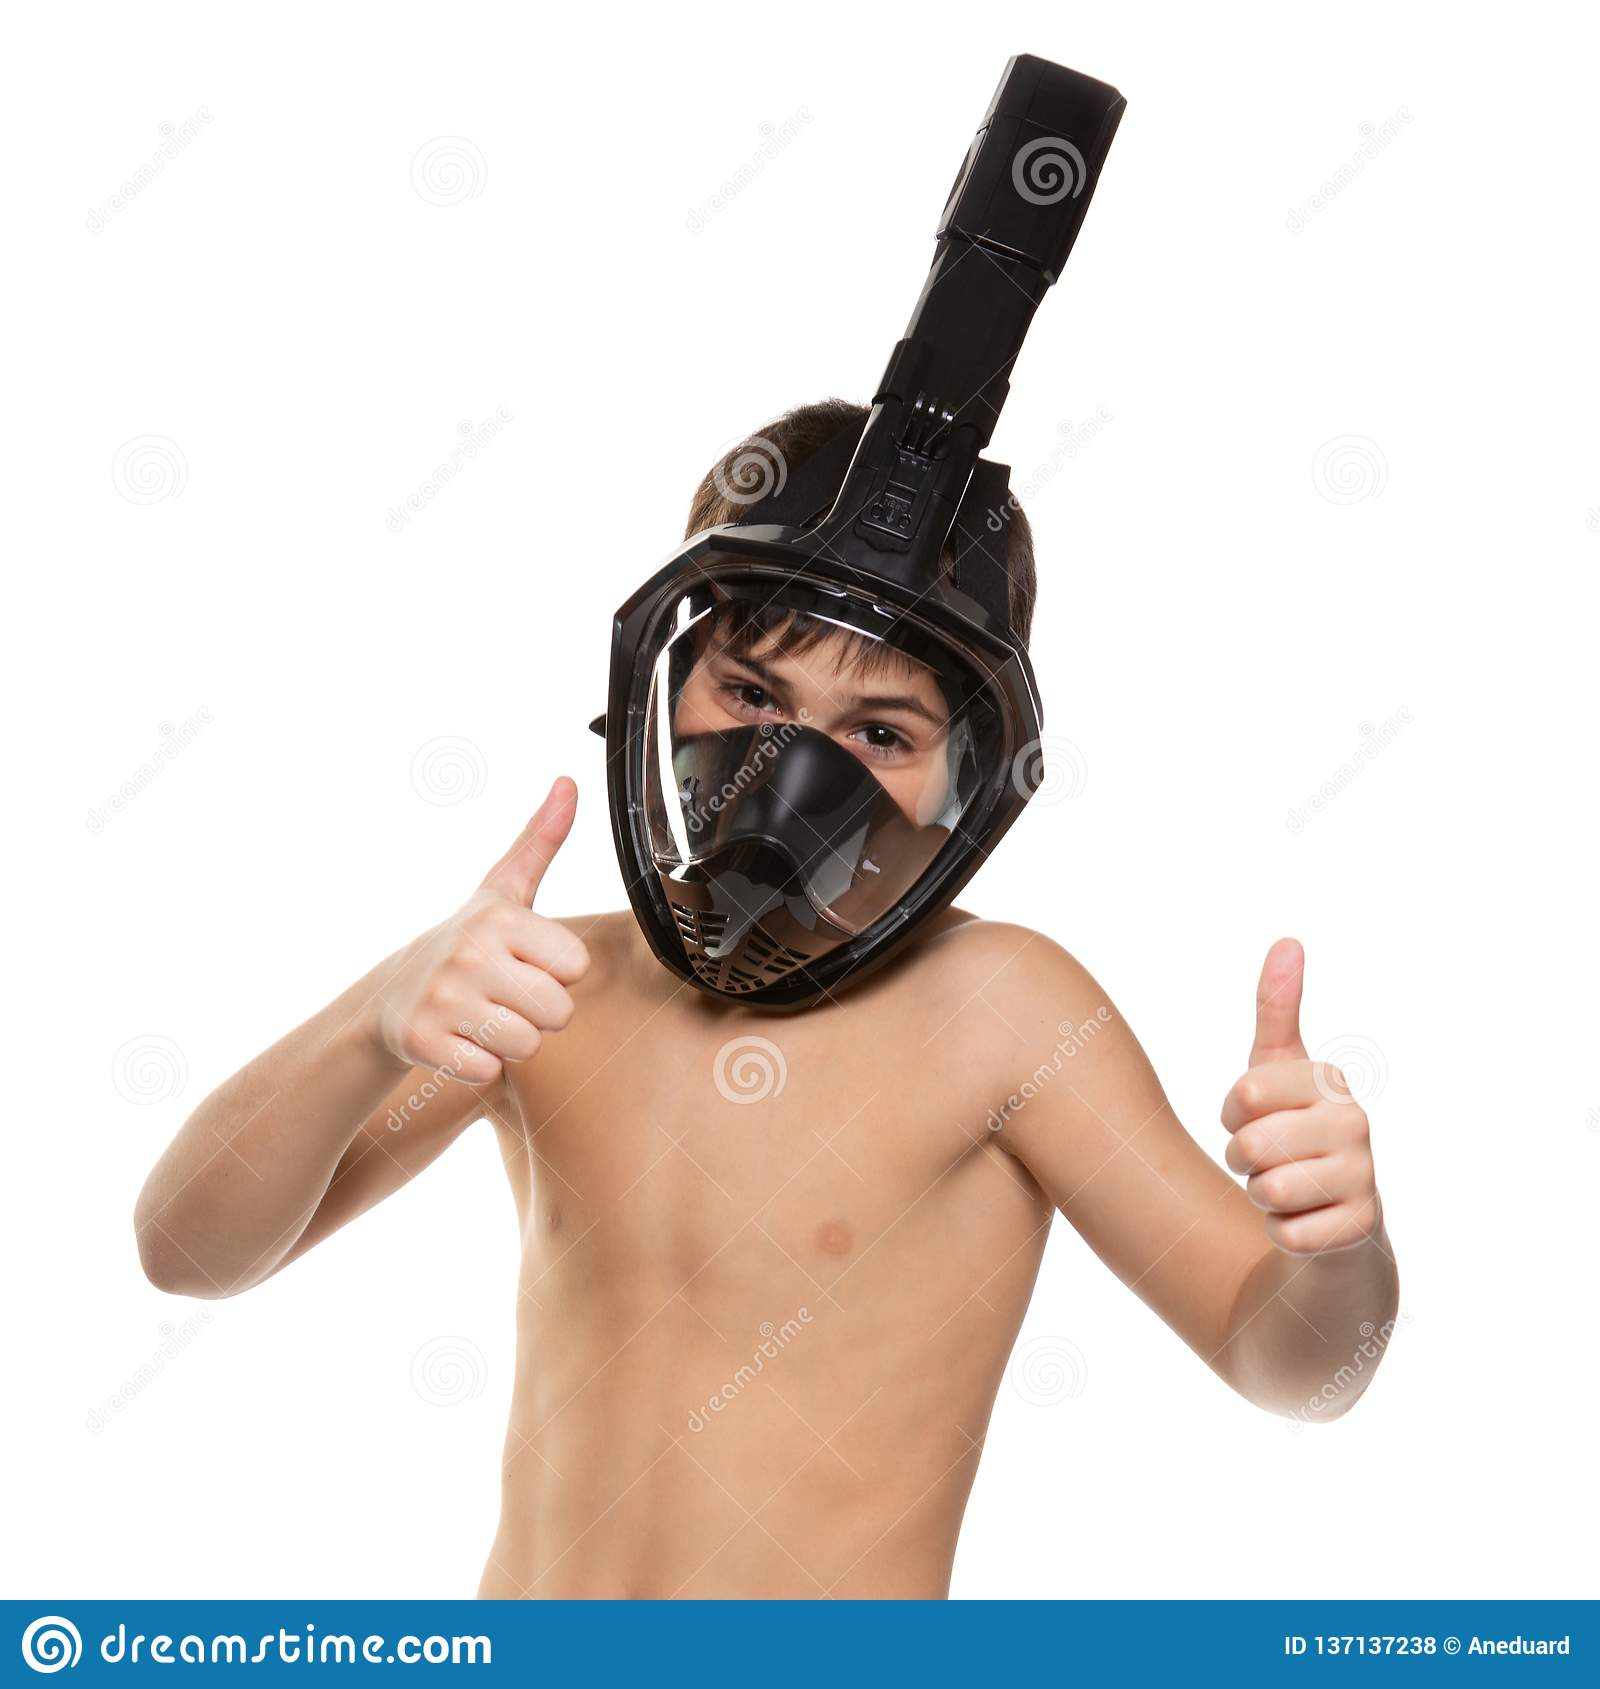 Boy athlete with a full face diving mask on his face, boy shows gestures, lifestyle concept, on a white background